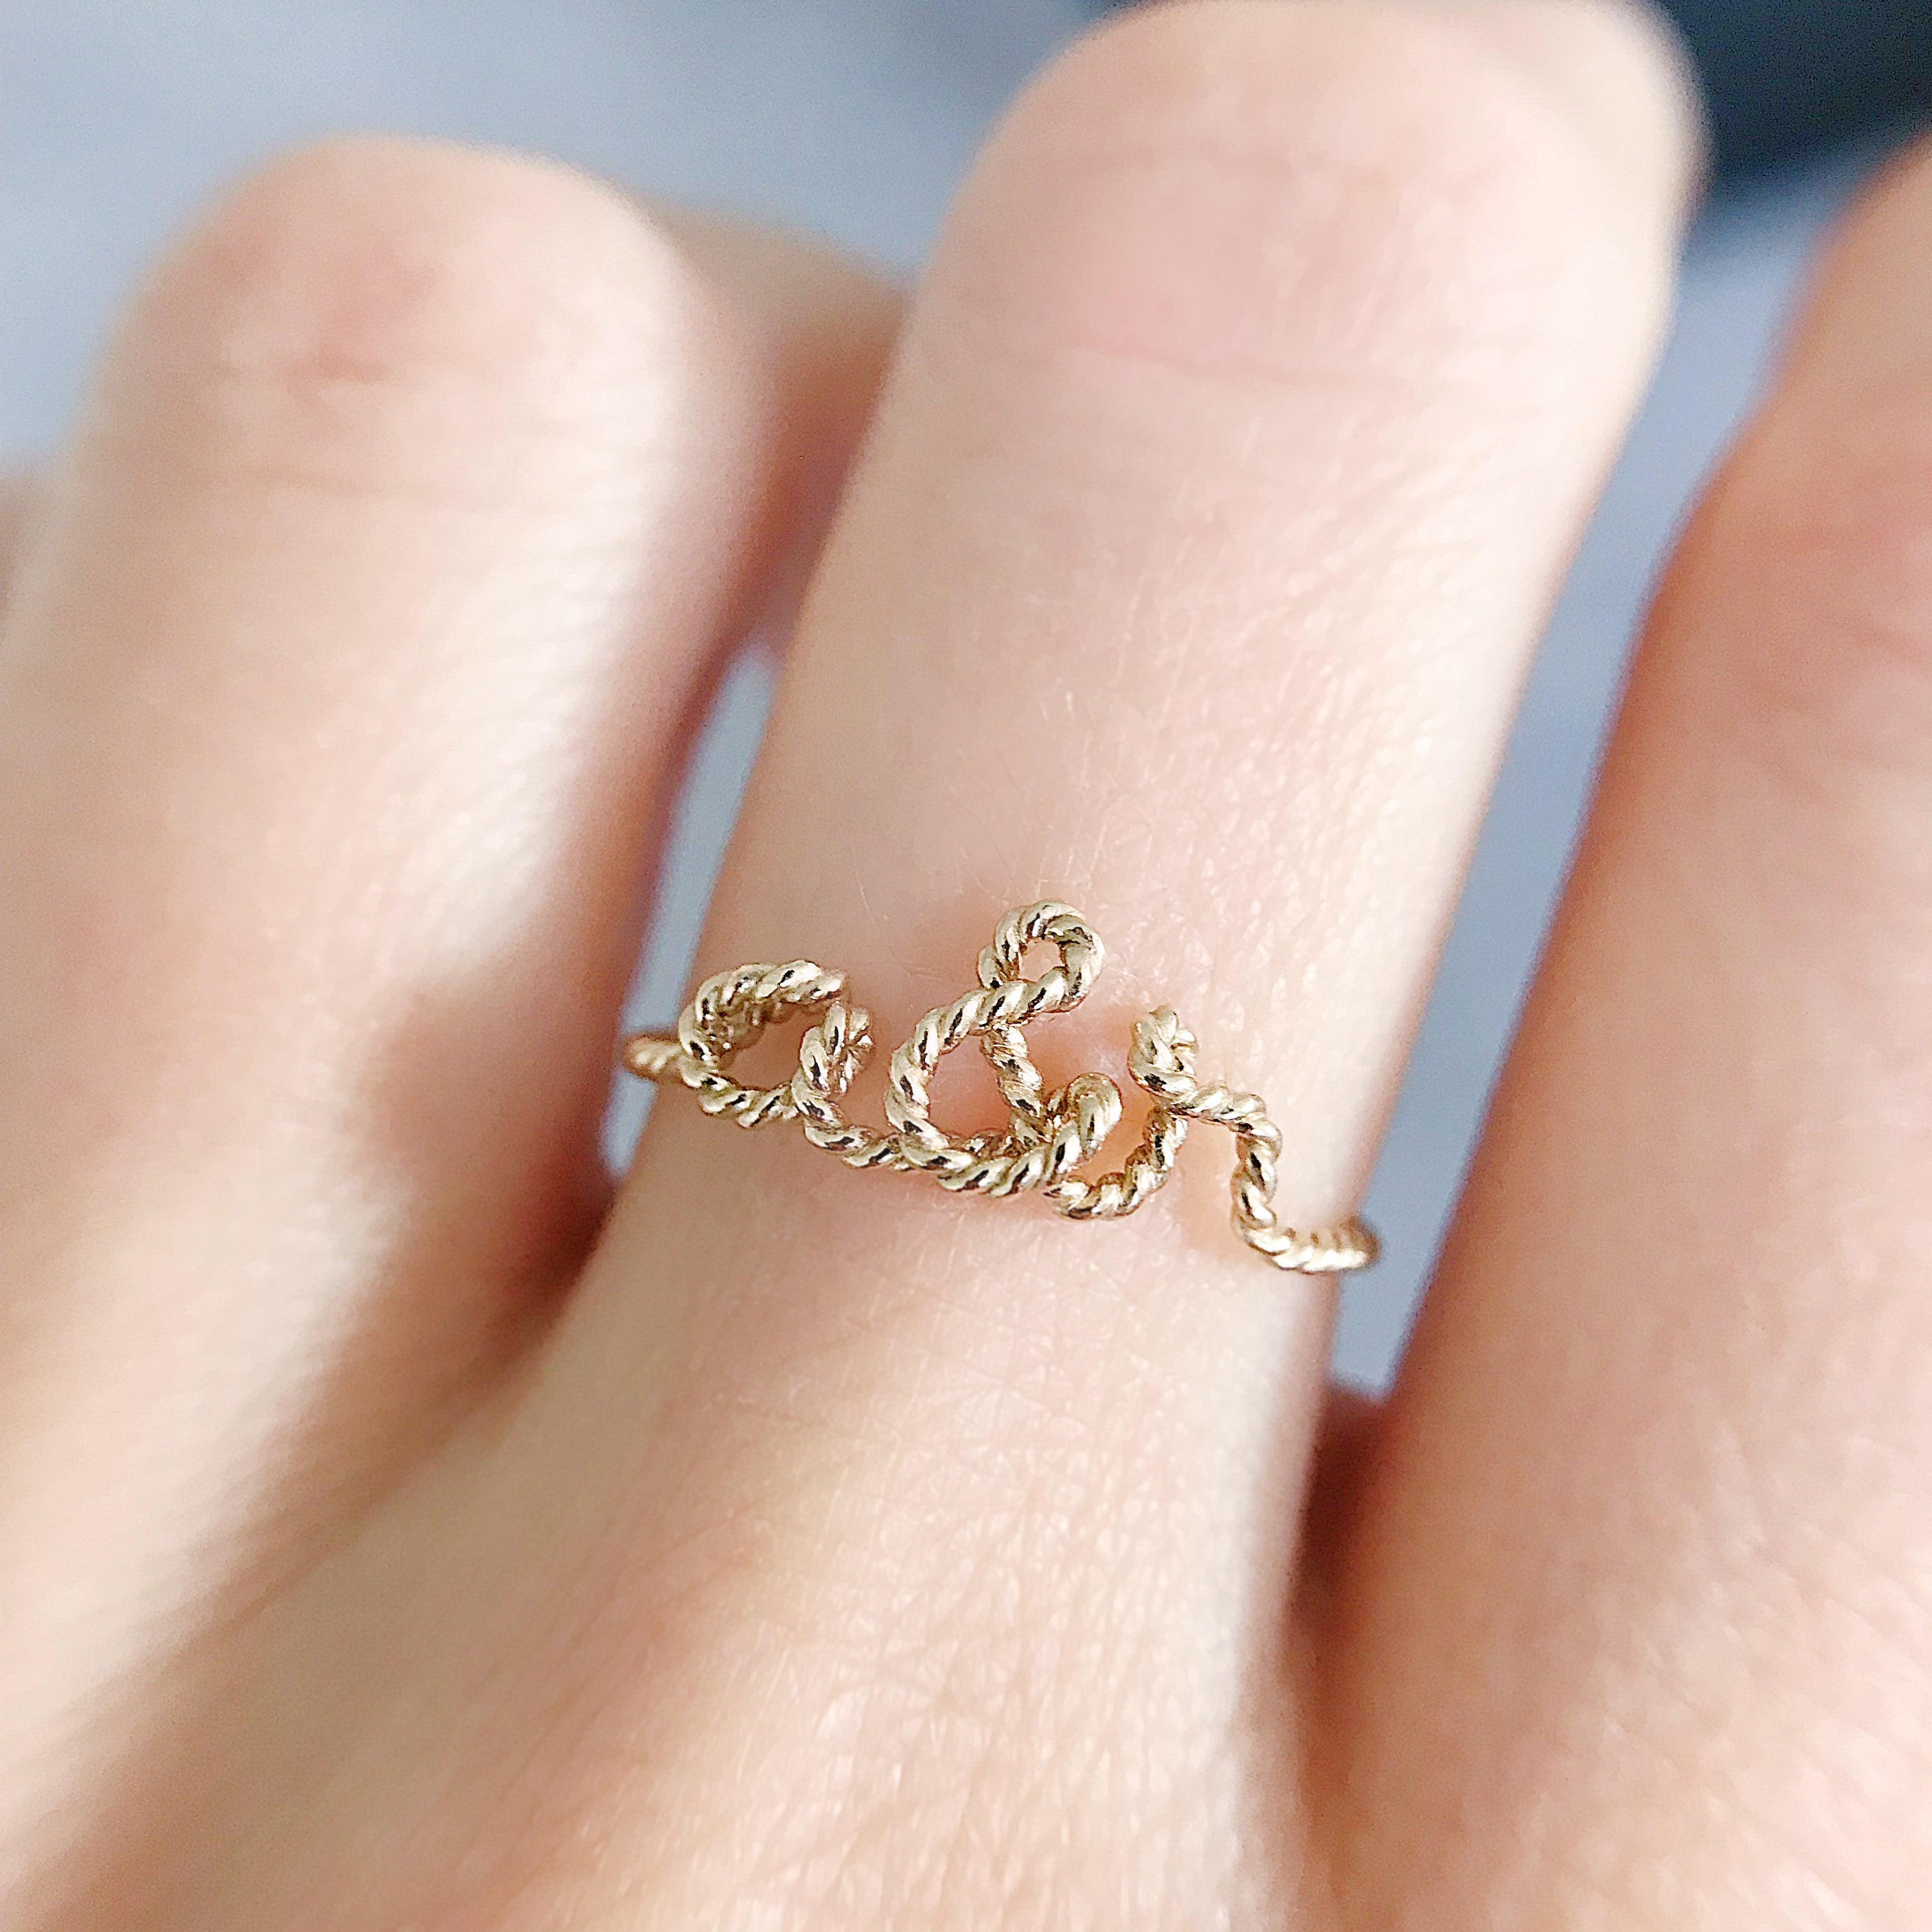 Personalised name 'you and me' a&r Ampersand twisted wire ring 14K yellow gold filled handmade by Rachel and Joseph Jewellery in London, UK hand Square